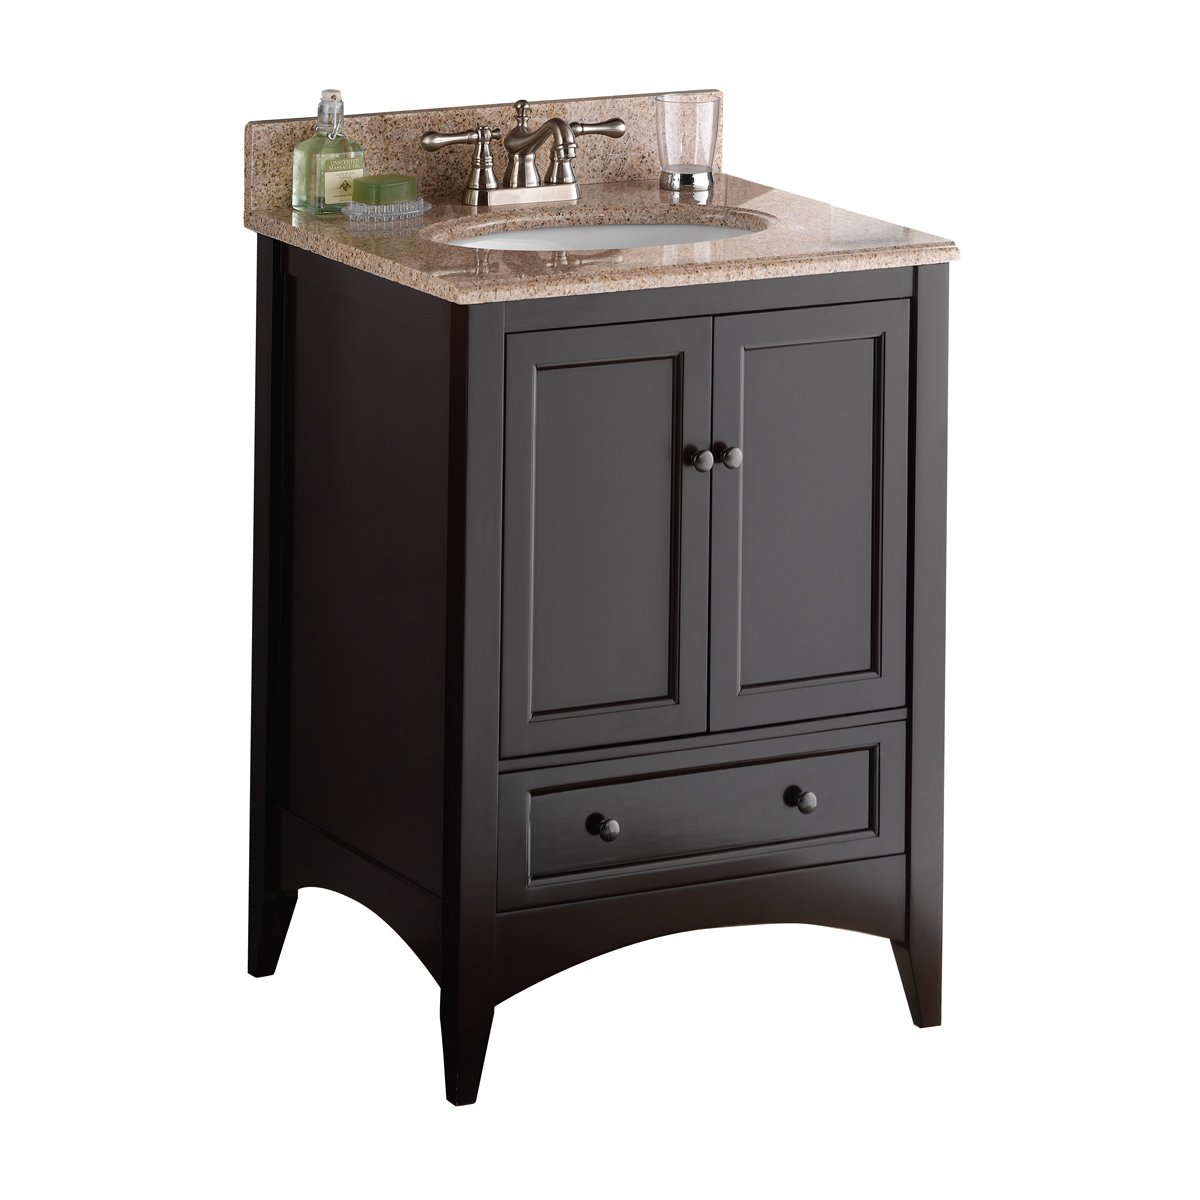 charming using ideas furniture bathroom single inch vanity vanities farmhouse for sink lowes dazzling in bathro inchsolid sinks white martin apron discount wood